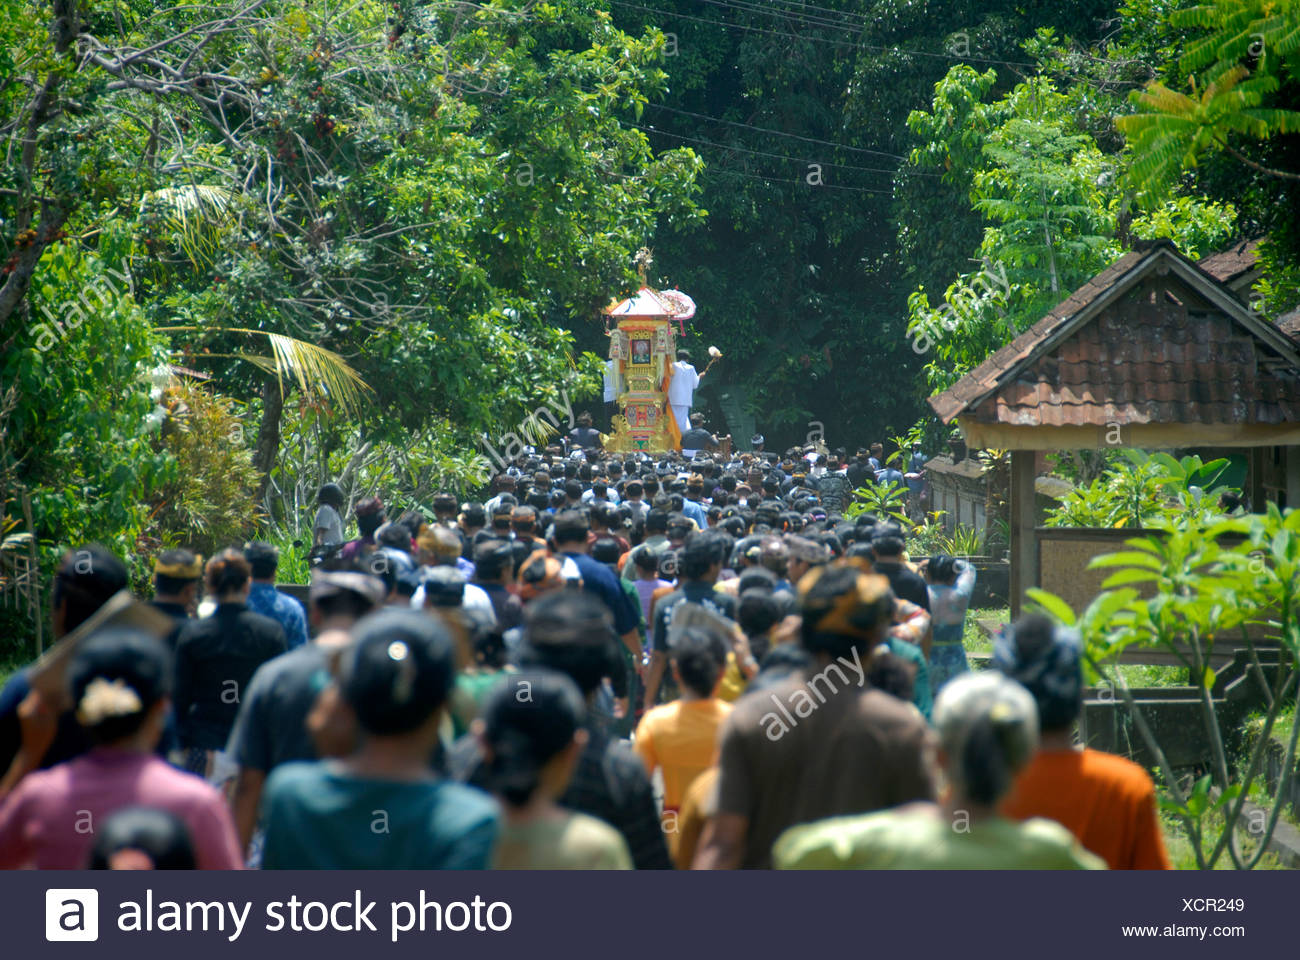 Bali Hinduism, many believers meeting in religious funeral ceremony, procession with dead body in shrine, Bongkasa near Ubud - Stock Image